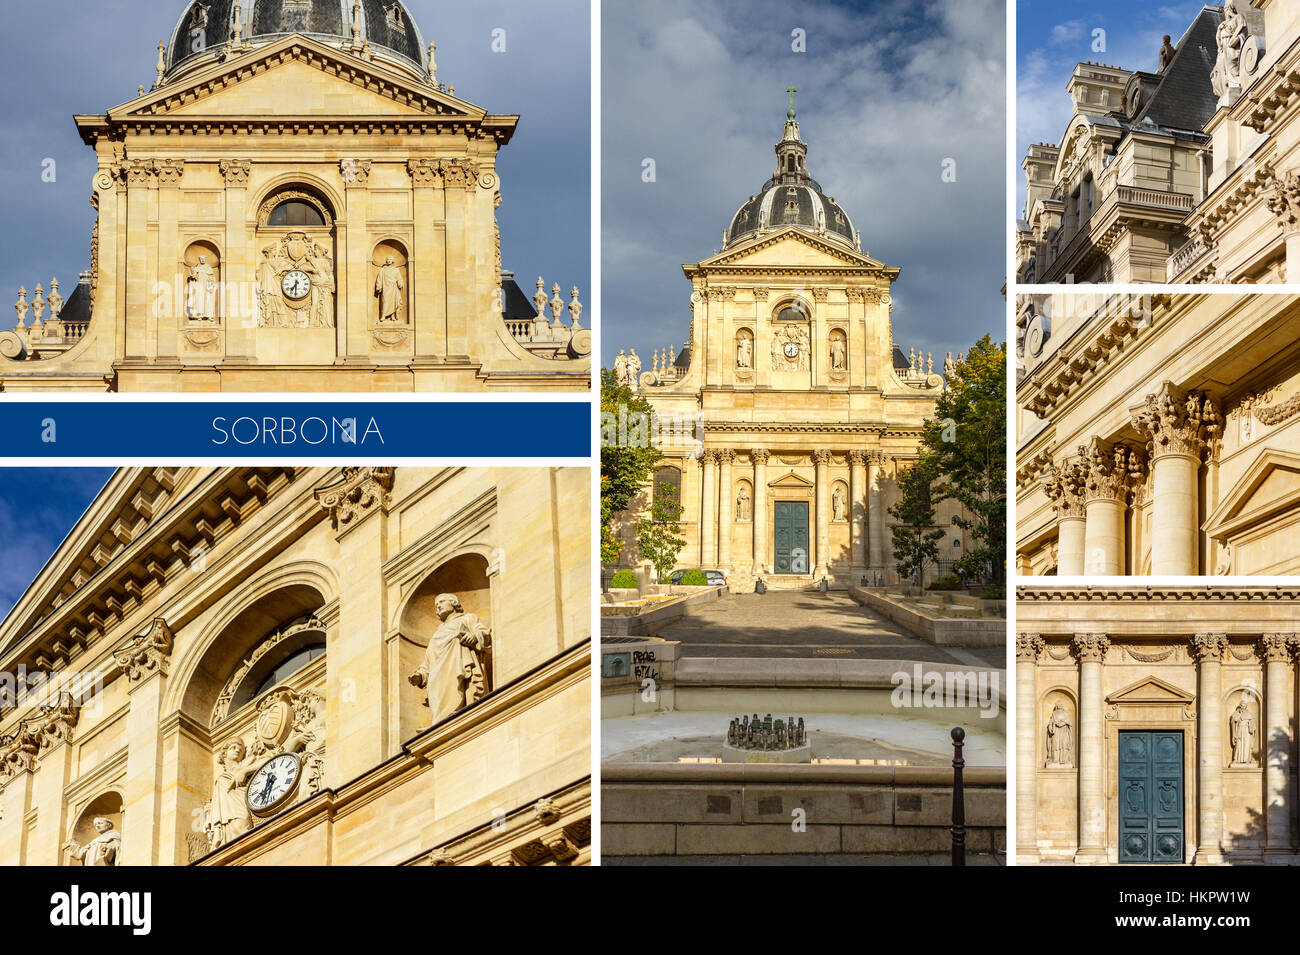 Historical house of Sorbonne the former University of Parisis edifice of the Latin Quarter in Paris, France. - Stock Image